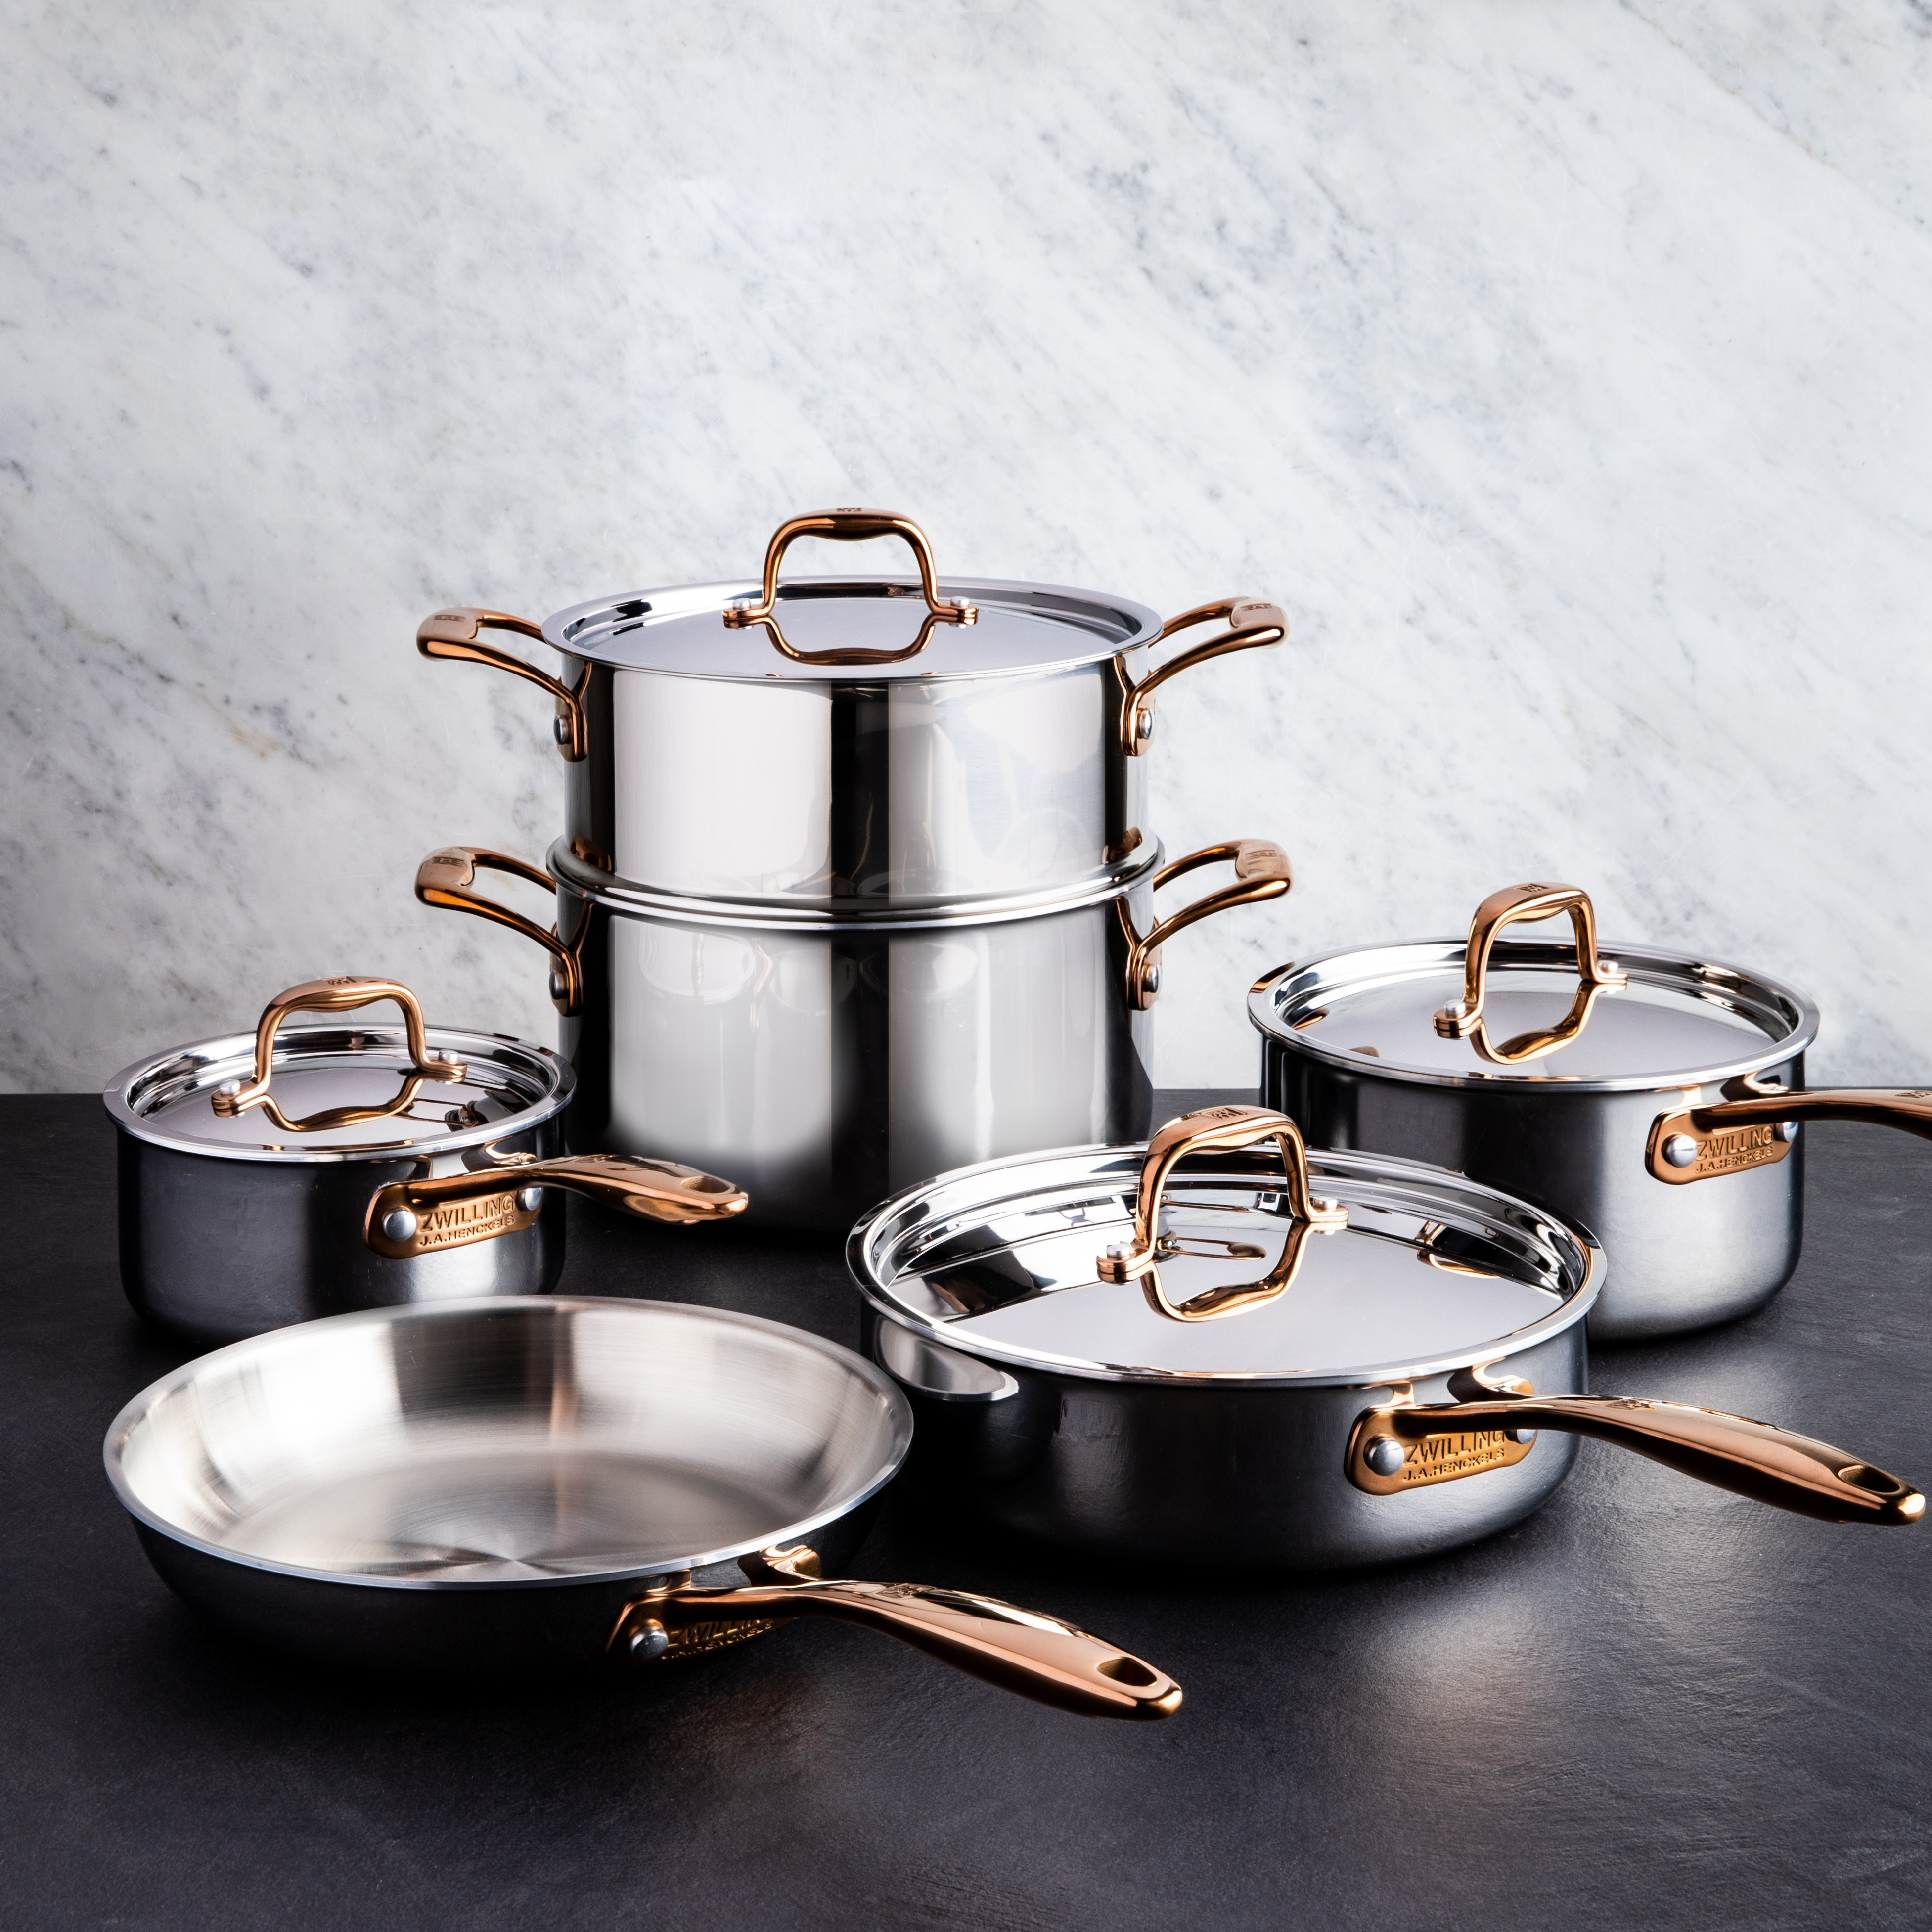 brushed stainless steel cookware set with rose gold accents